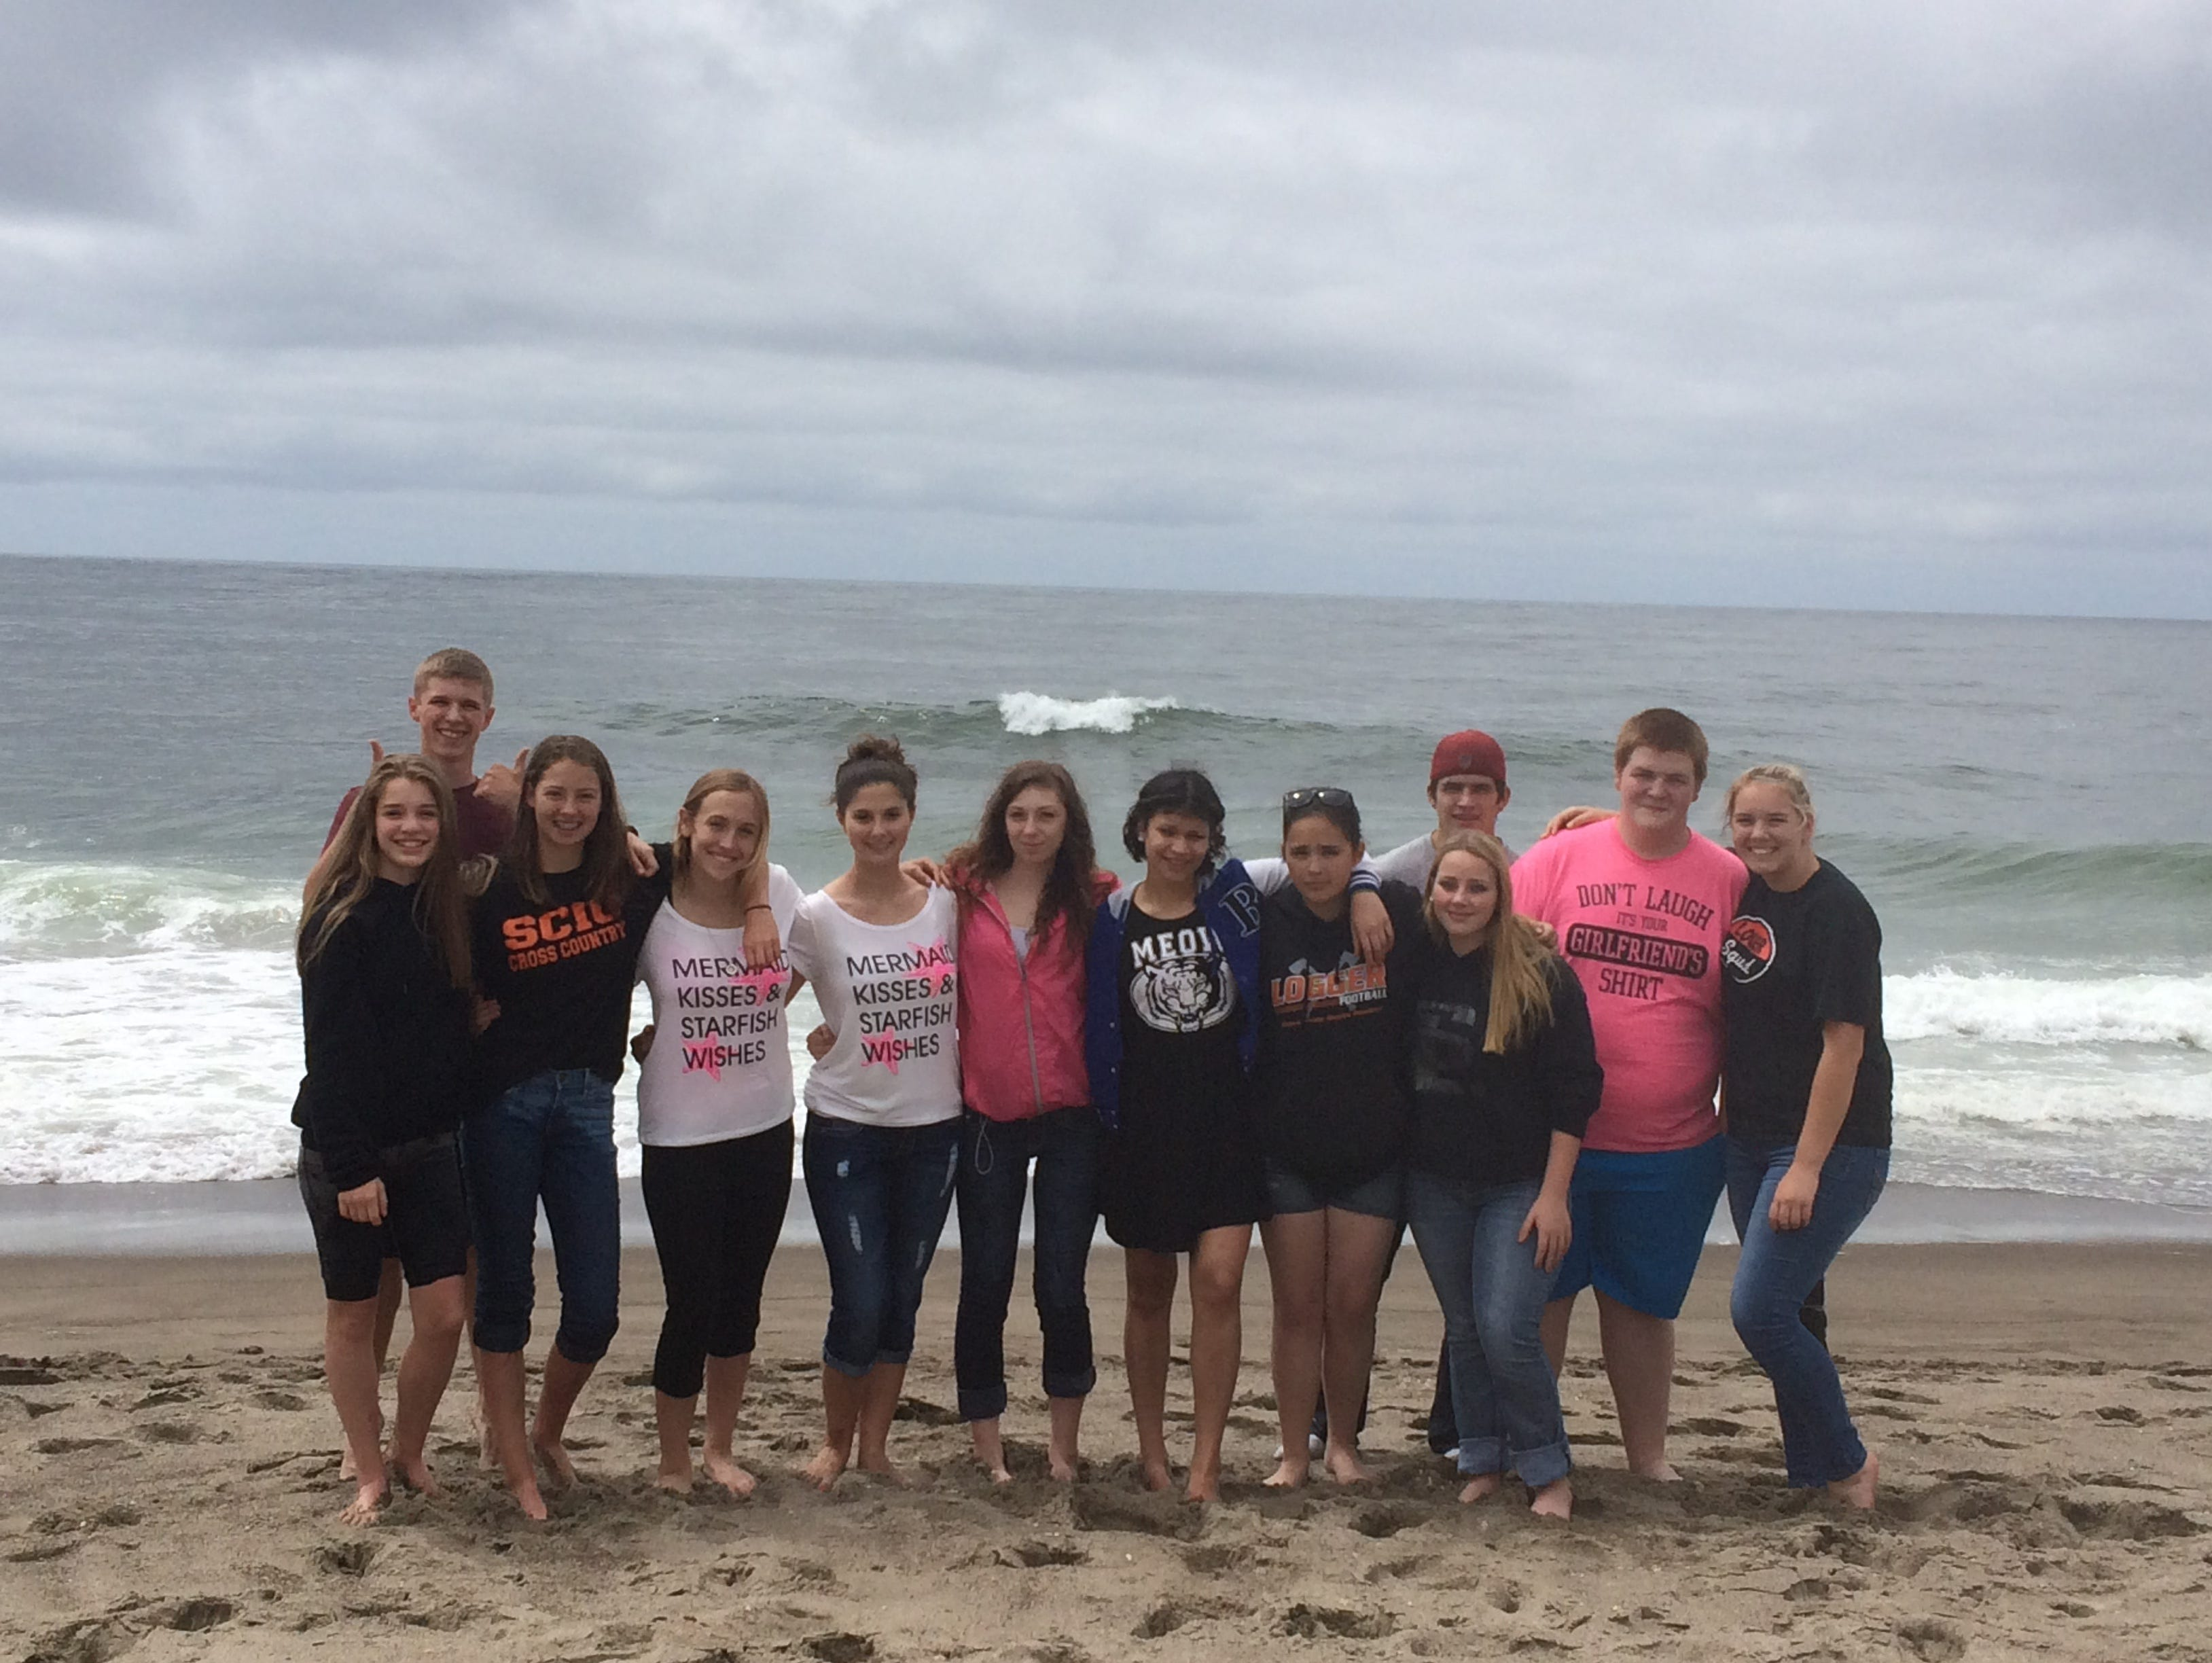 Members of the Scio High School cheer team take a team-building beach timeout (from left: Emilie Pastega, Stephen Cate, Macy Bodine, Ashley Mask, Shyanne Hysell, Chloe James, Anna Hart, Shannon Campos, Zak Mance, Megan Evans, mascot Ethan Olson, and Valerie Clouse.